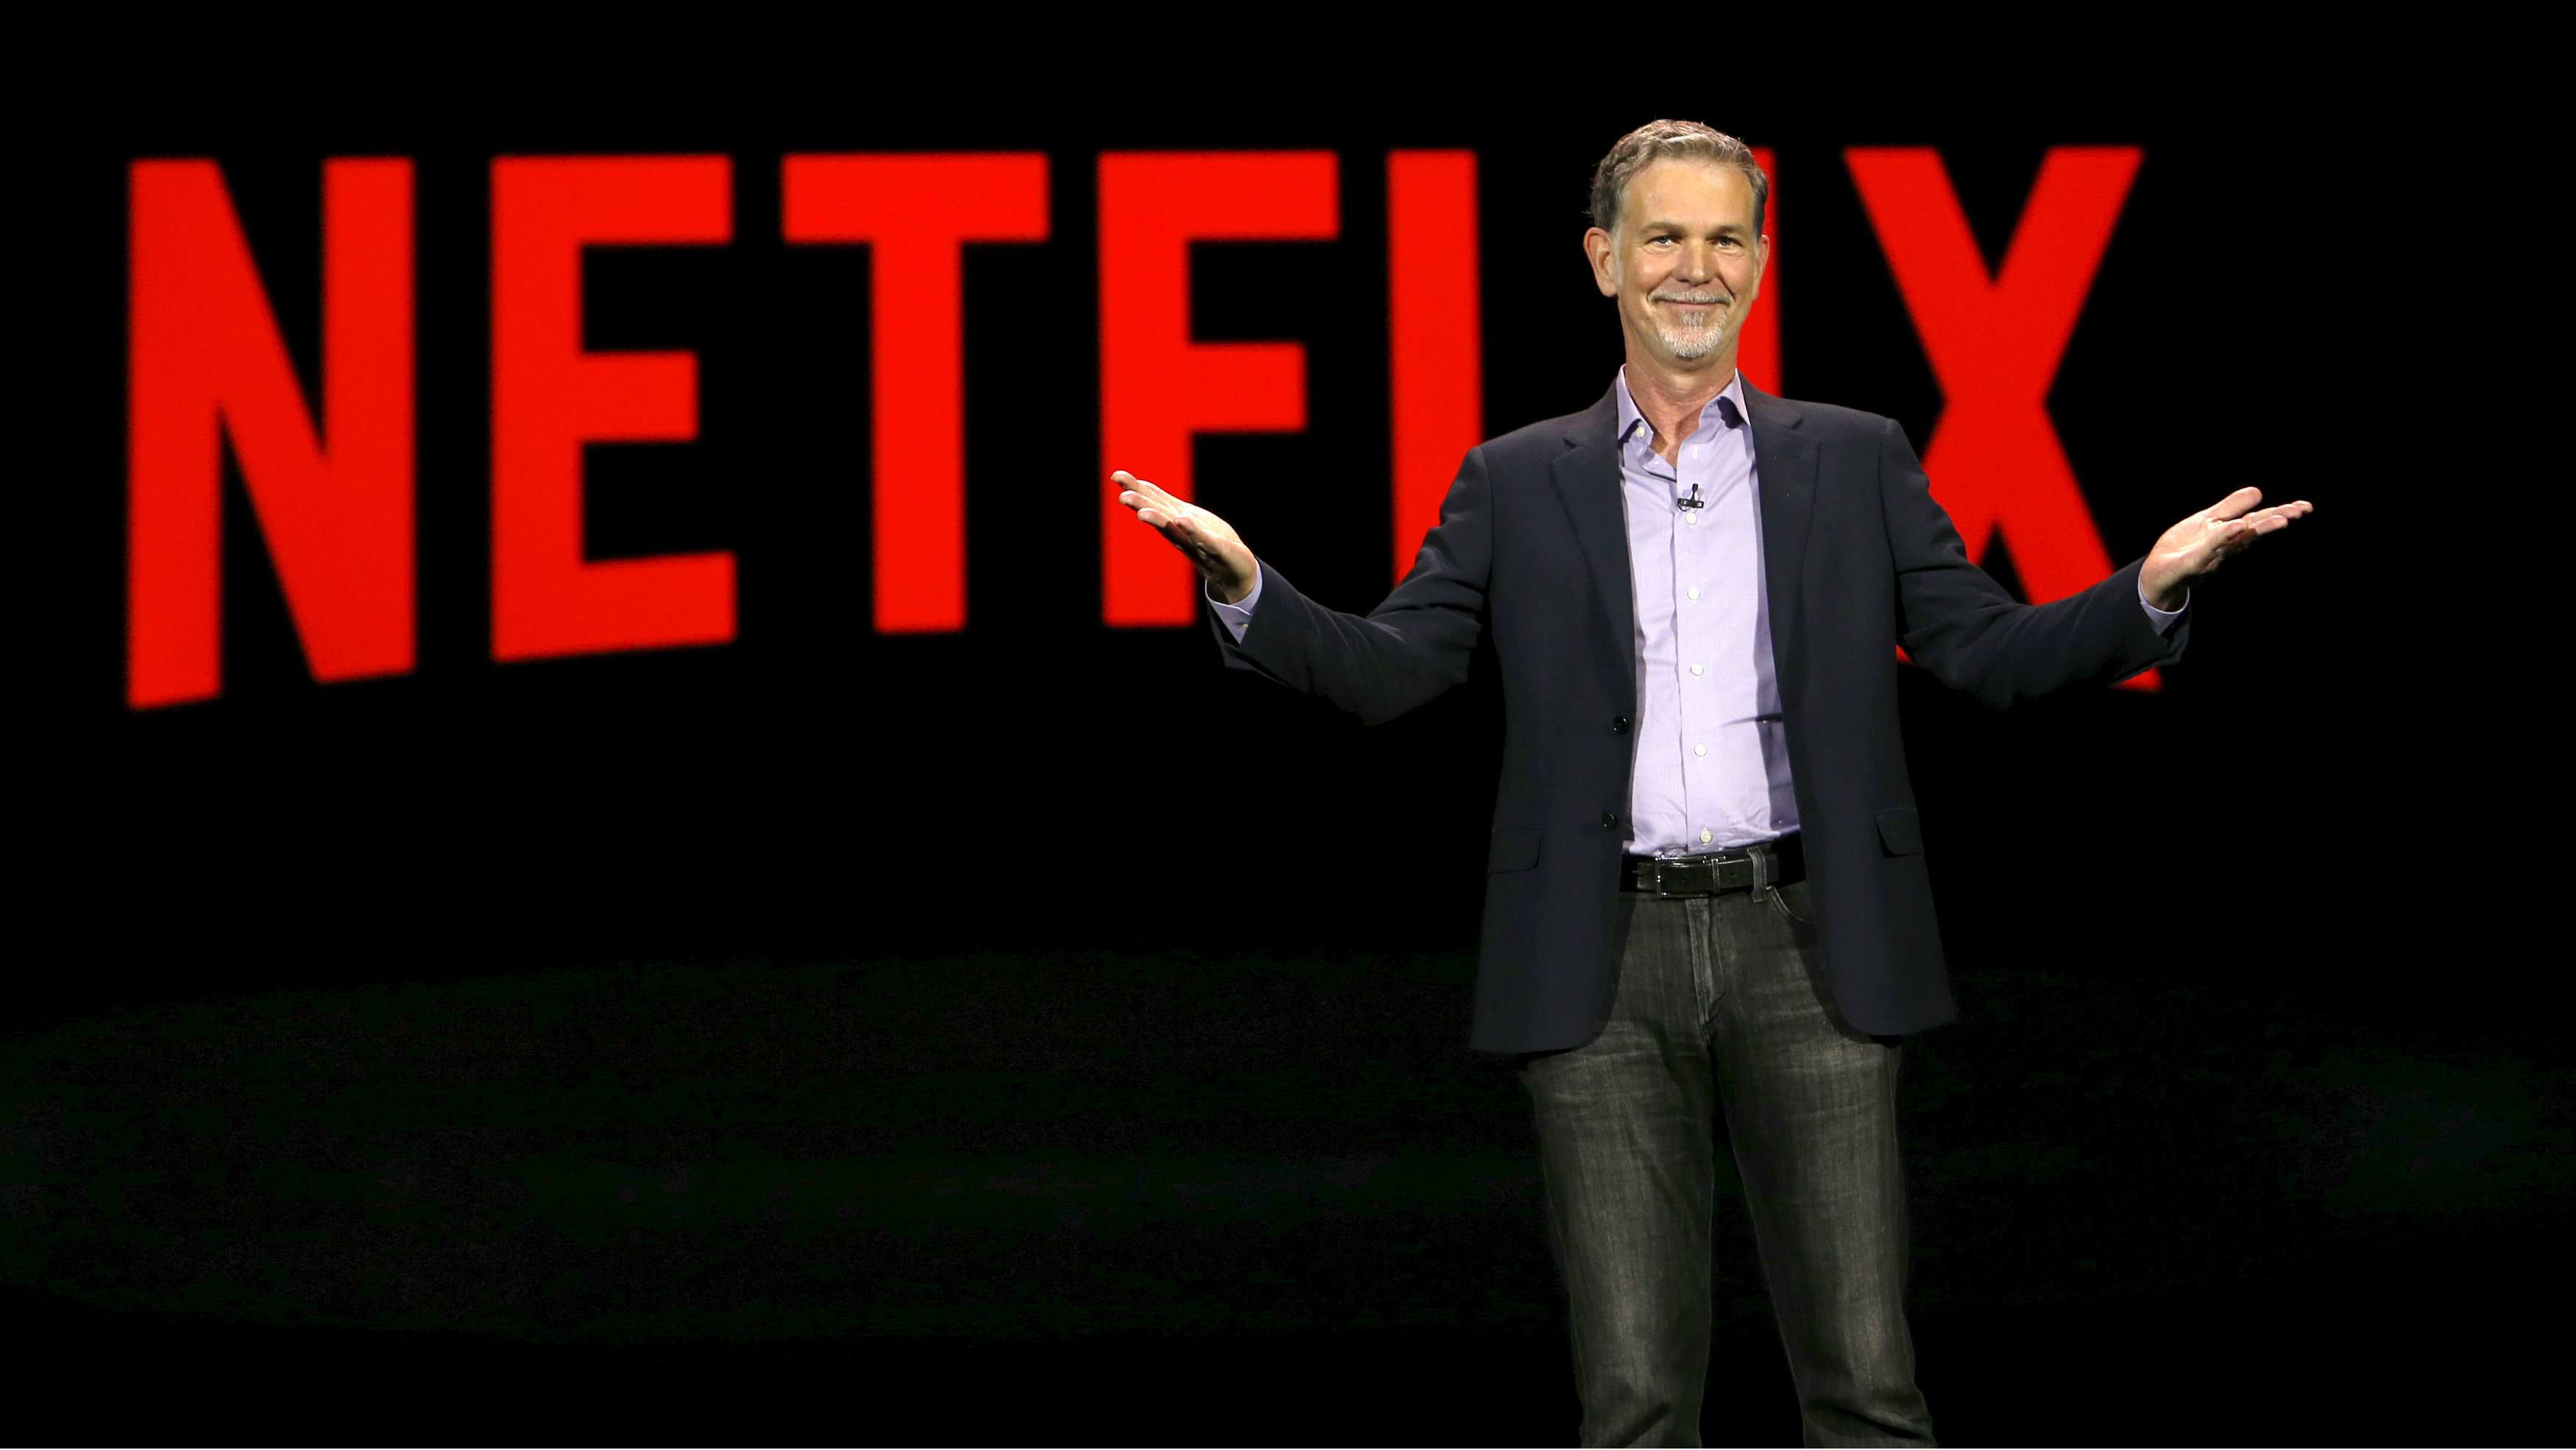 Reed Hastings, co-founder and CEO of Netflix, delivers a keynote address at the 2016 CES trade show in Las Vegas, Nevada in this January 6, 2016